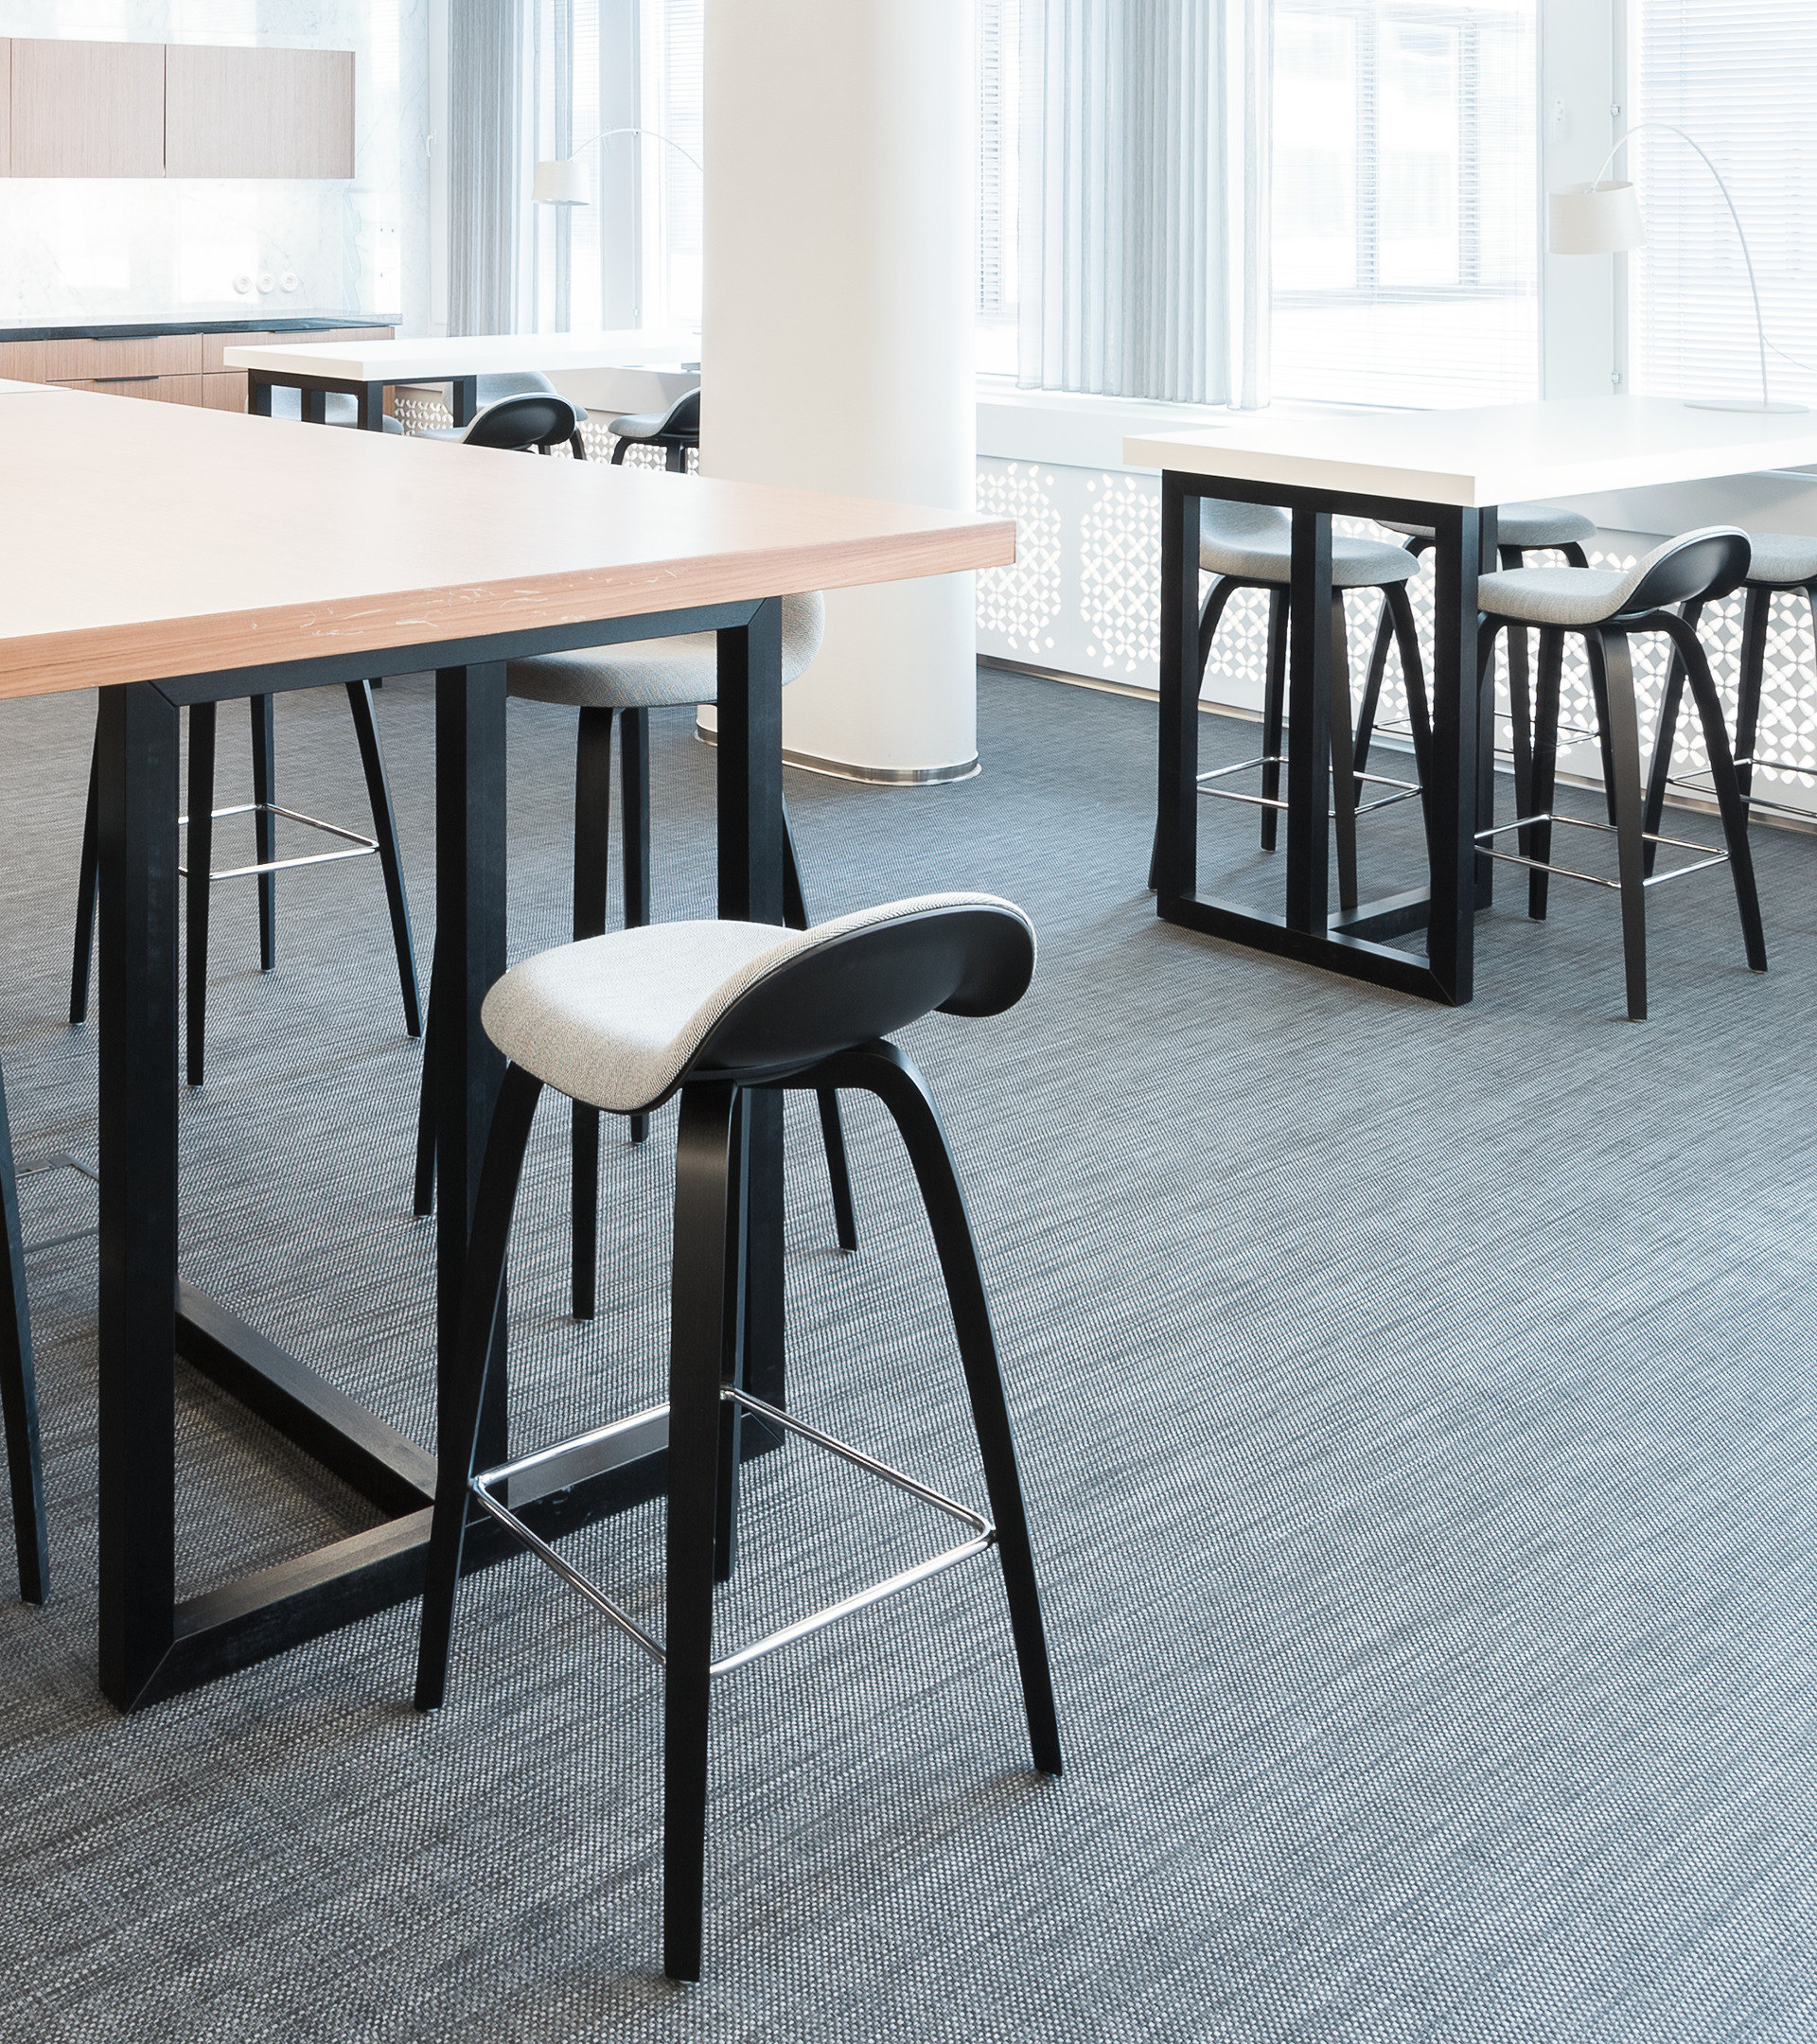 Confederation of Finnish Industries_cafe_workplace_high table and chairs